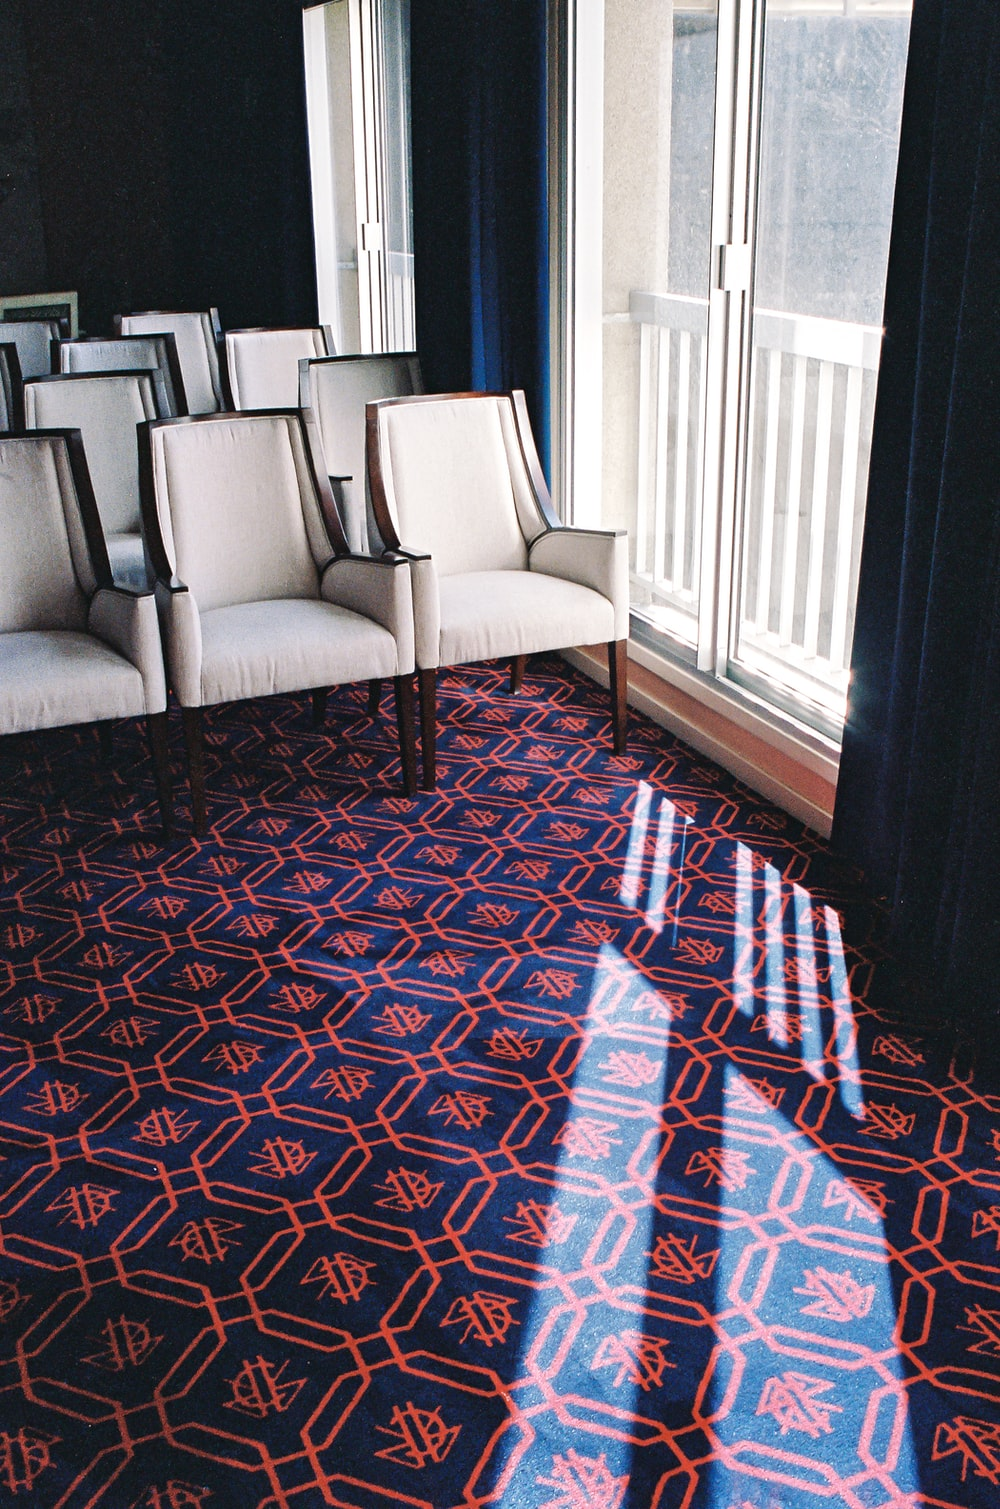 white leather sofa chair on red and blue area rug